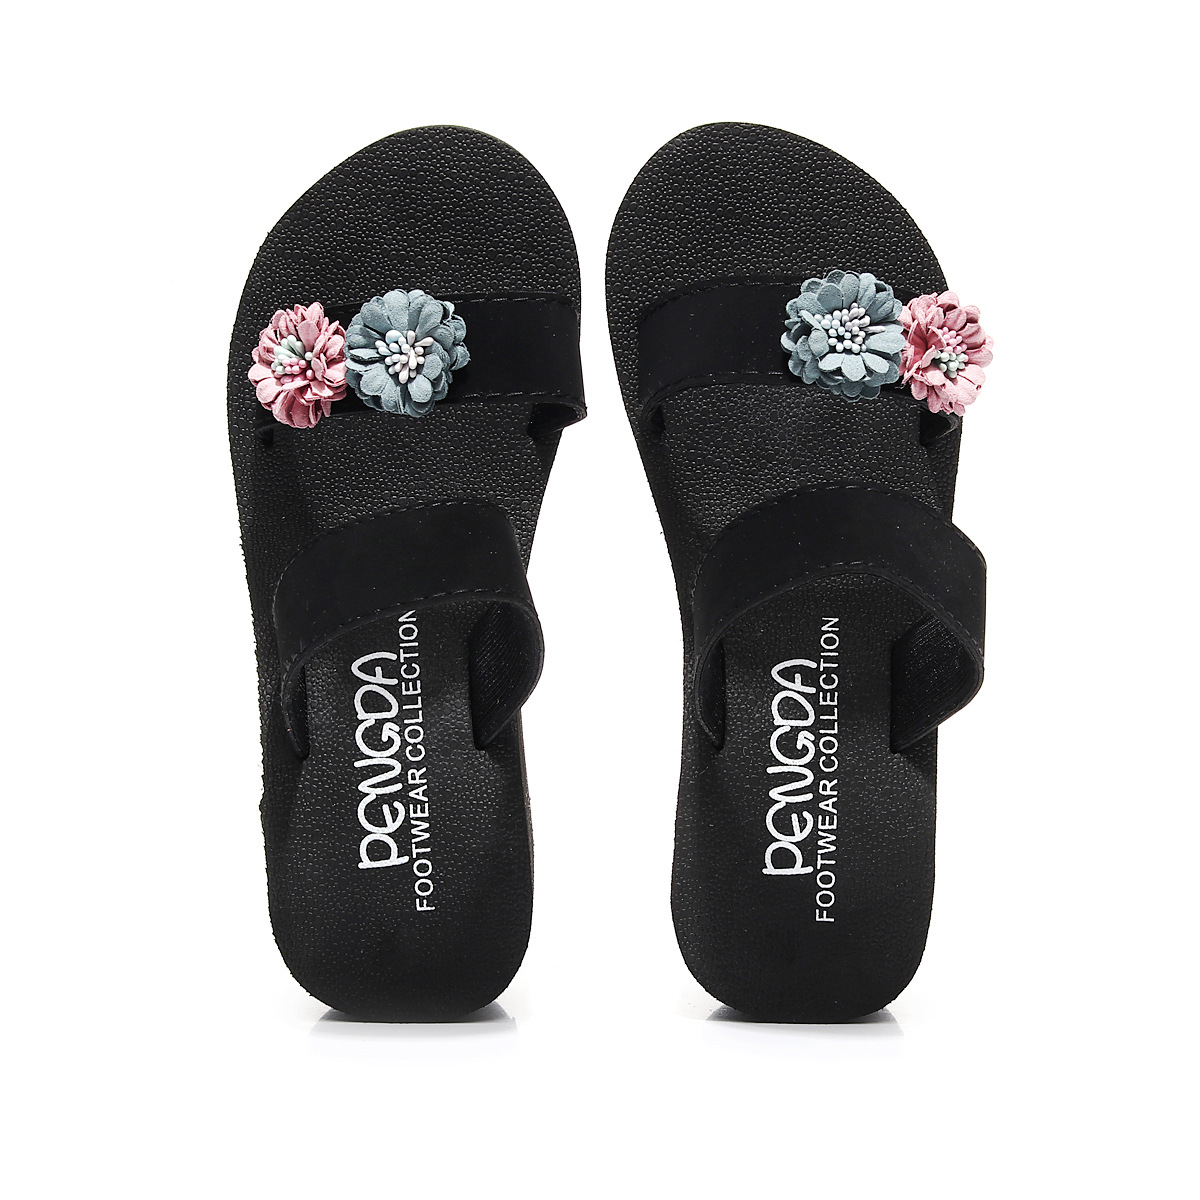 a6a6b5f093a07 Buy 2018 summer new anti-skid flip flops ladies fashion wood grain ...